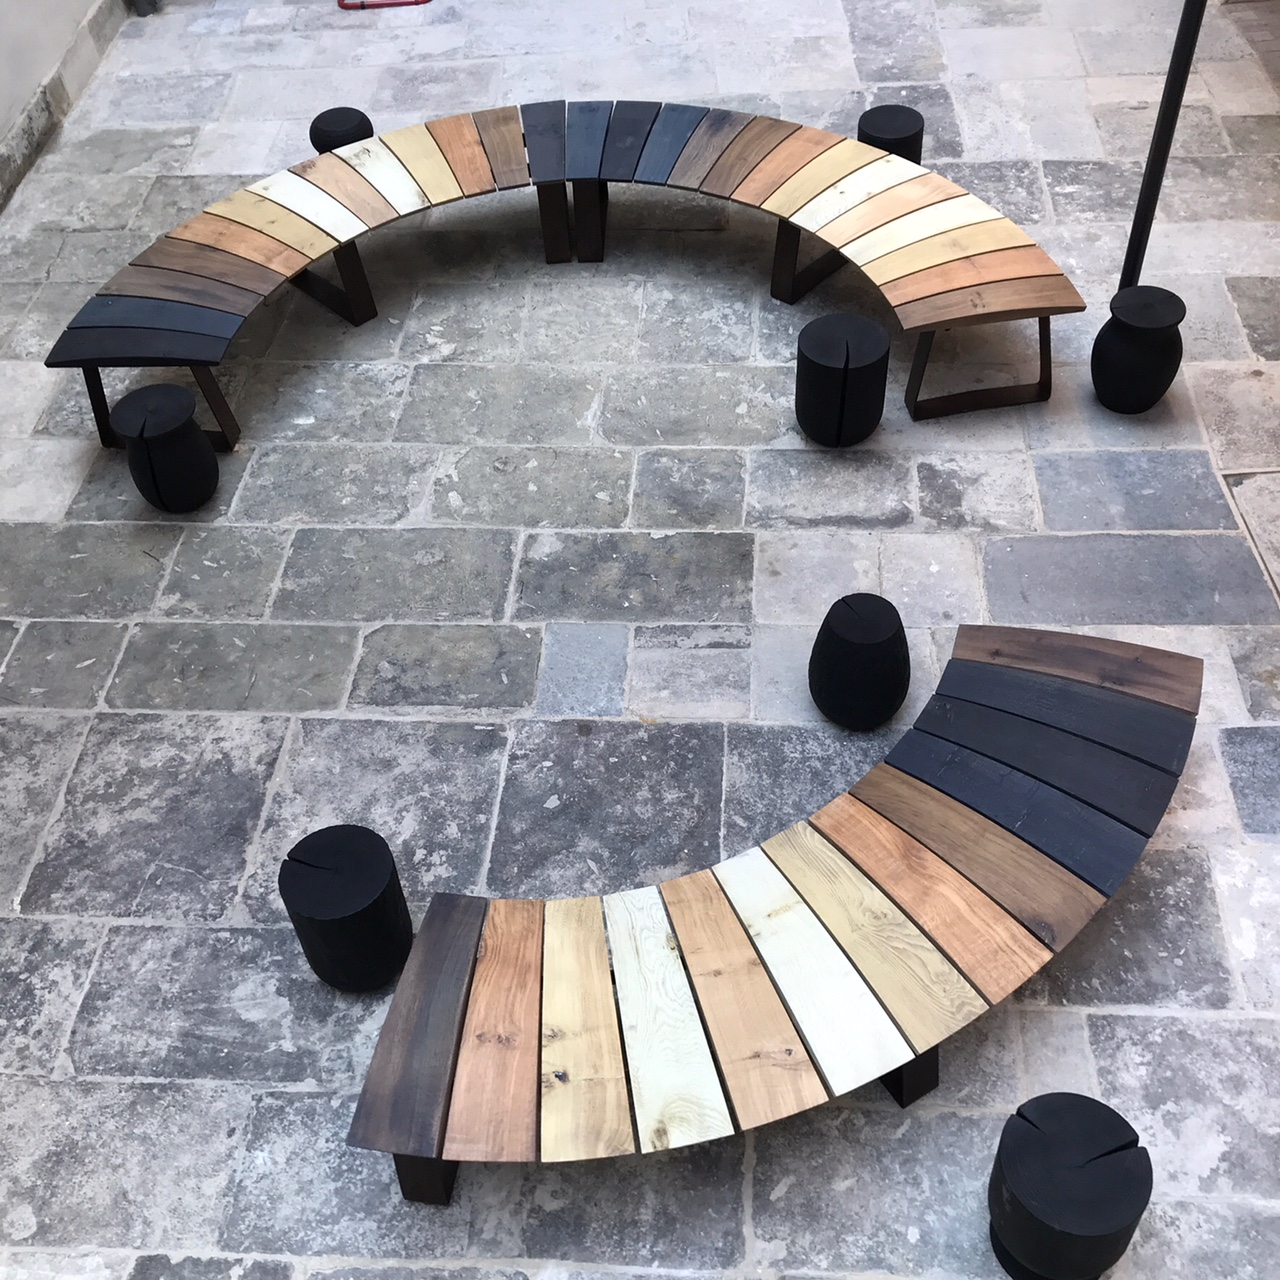 Bench And Stools Created By Alice Blogg For LSI Bridport Using Dorset  Timber As Seen Being Felled In The Contemporary Dorset Makers Short Film.